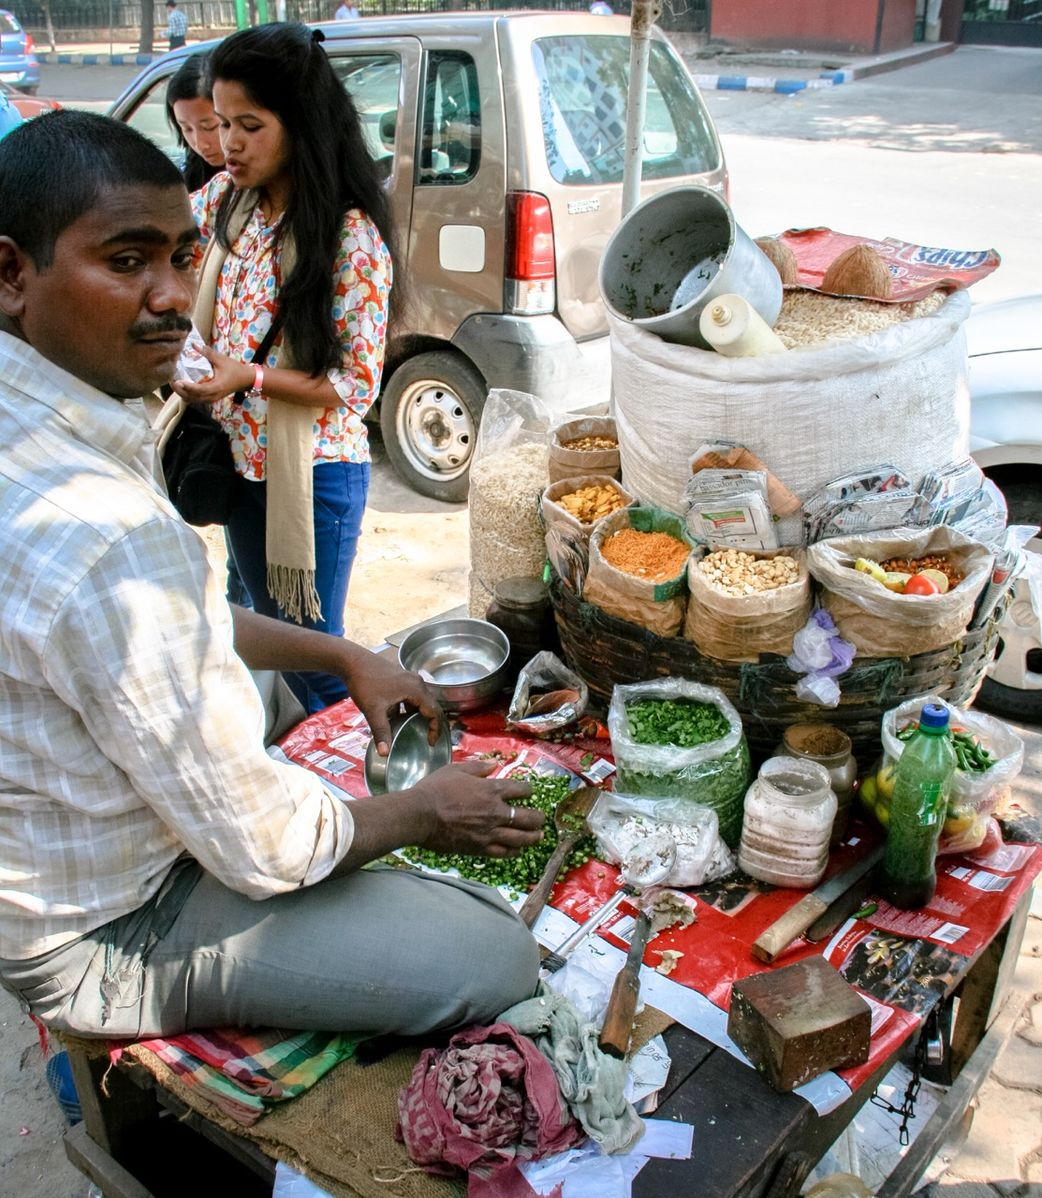 A 'muri' vendor on Kolkata's Camac Street. Credit: Wikimedia Commons